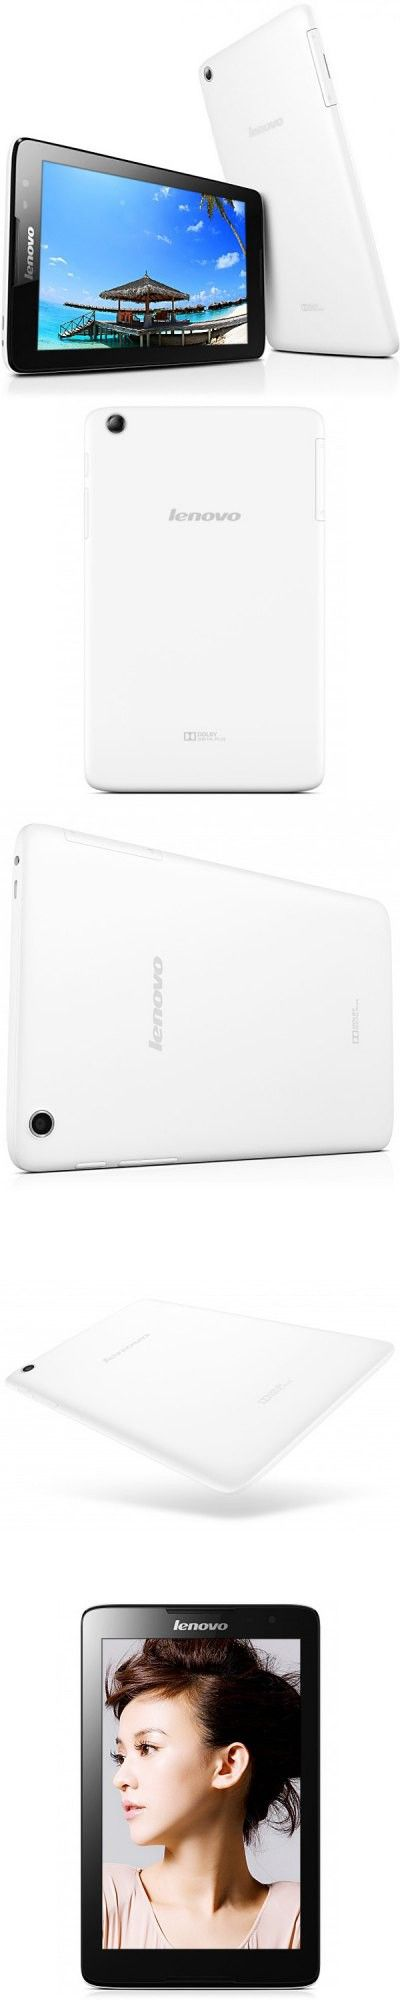 Android Tablet | Lenovo A5500 Android 4.2 3G Phone Tablet PC with 8.0 inch WXGA IPS Screen MTK8382M Quad Core 1.3GHz Dual Cameras WiFi GPS Bluetooth 16GB ROM $194.84